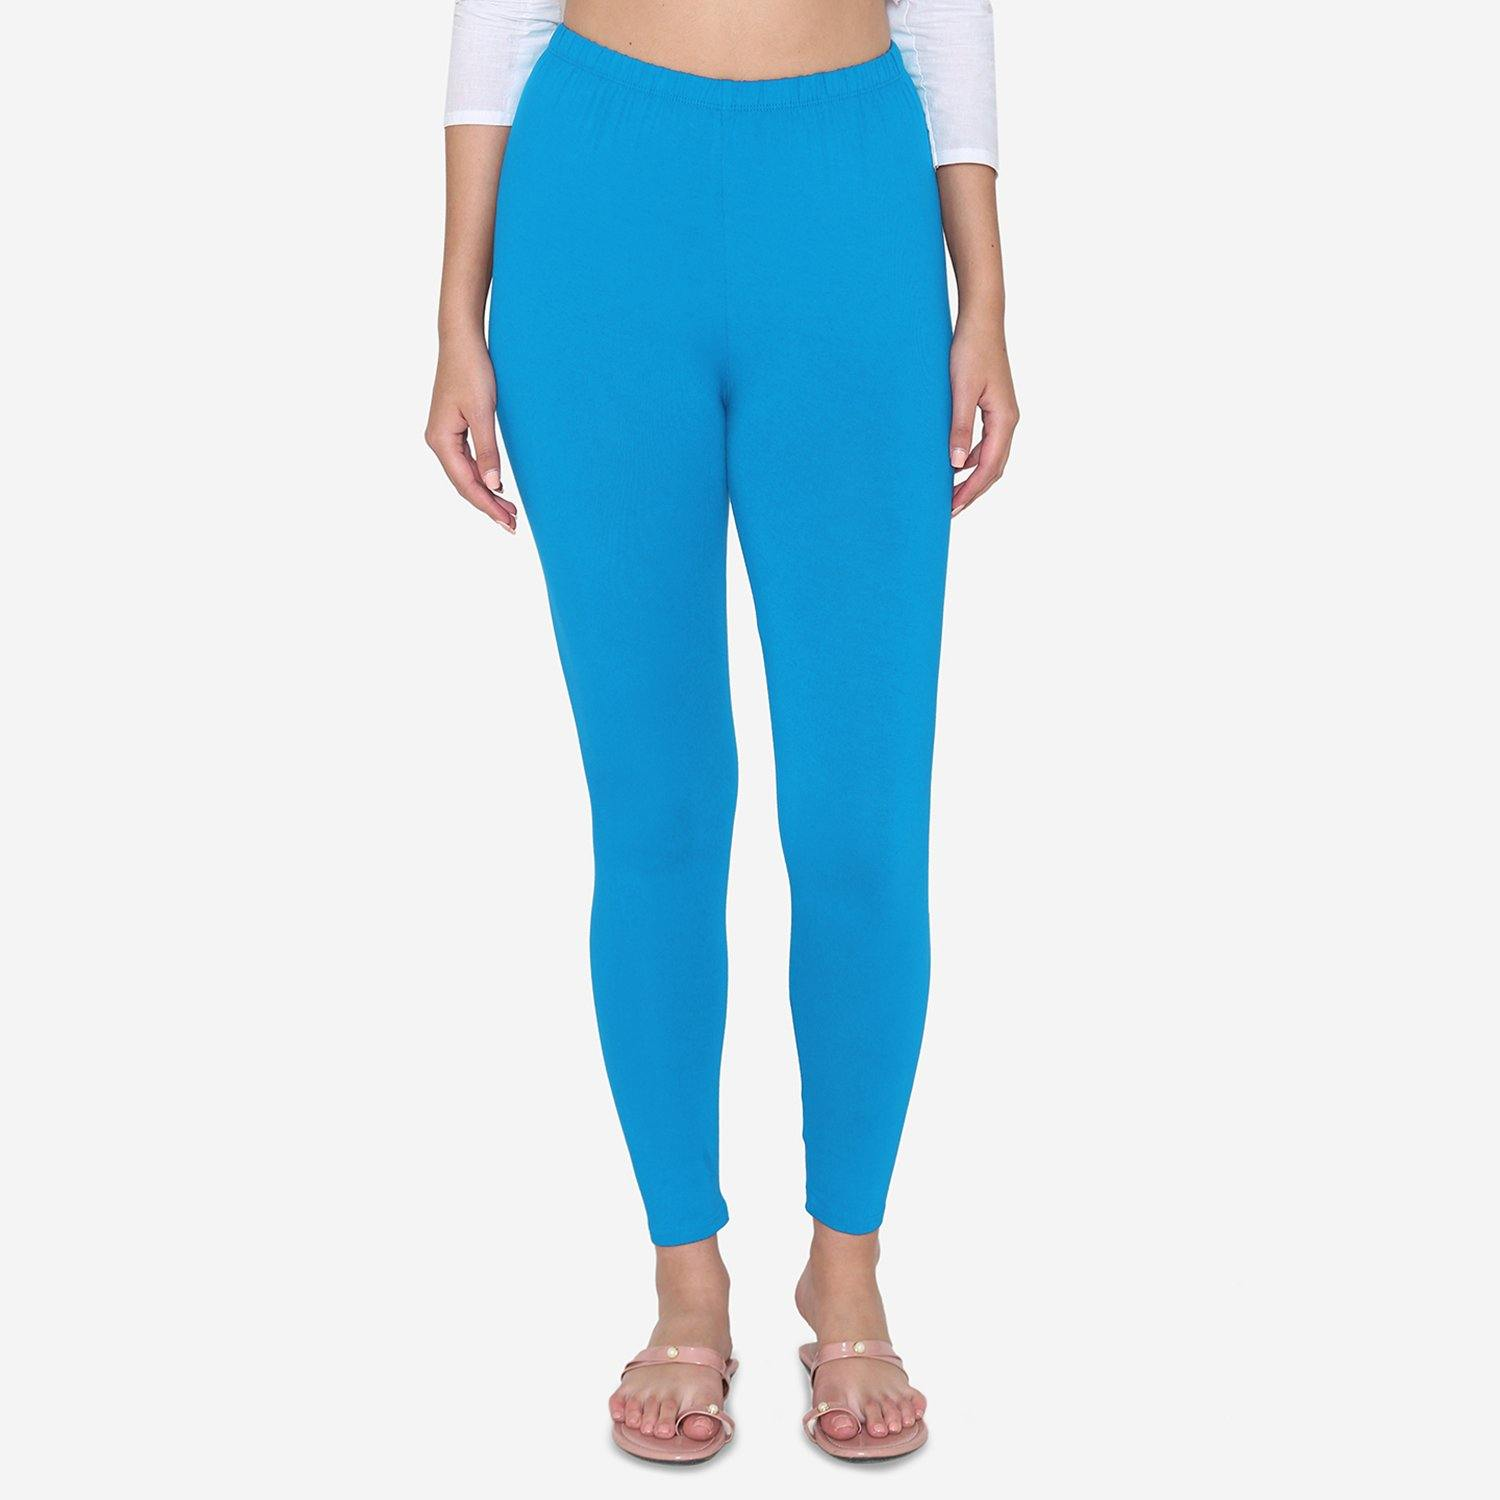 legging for Women